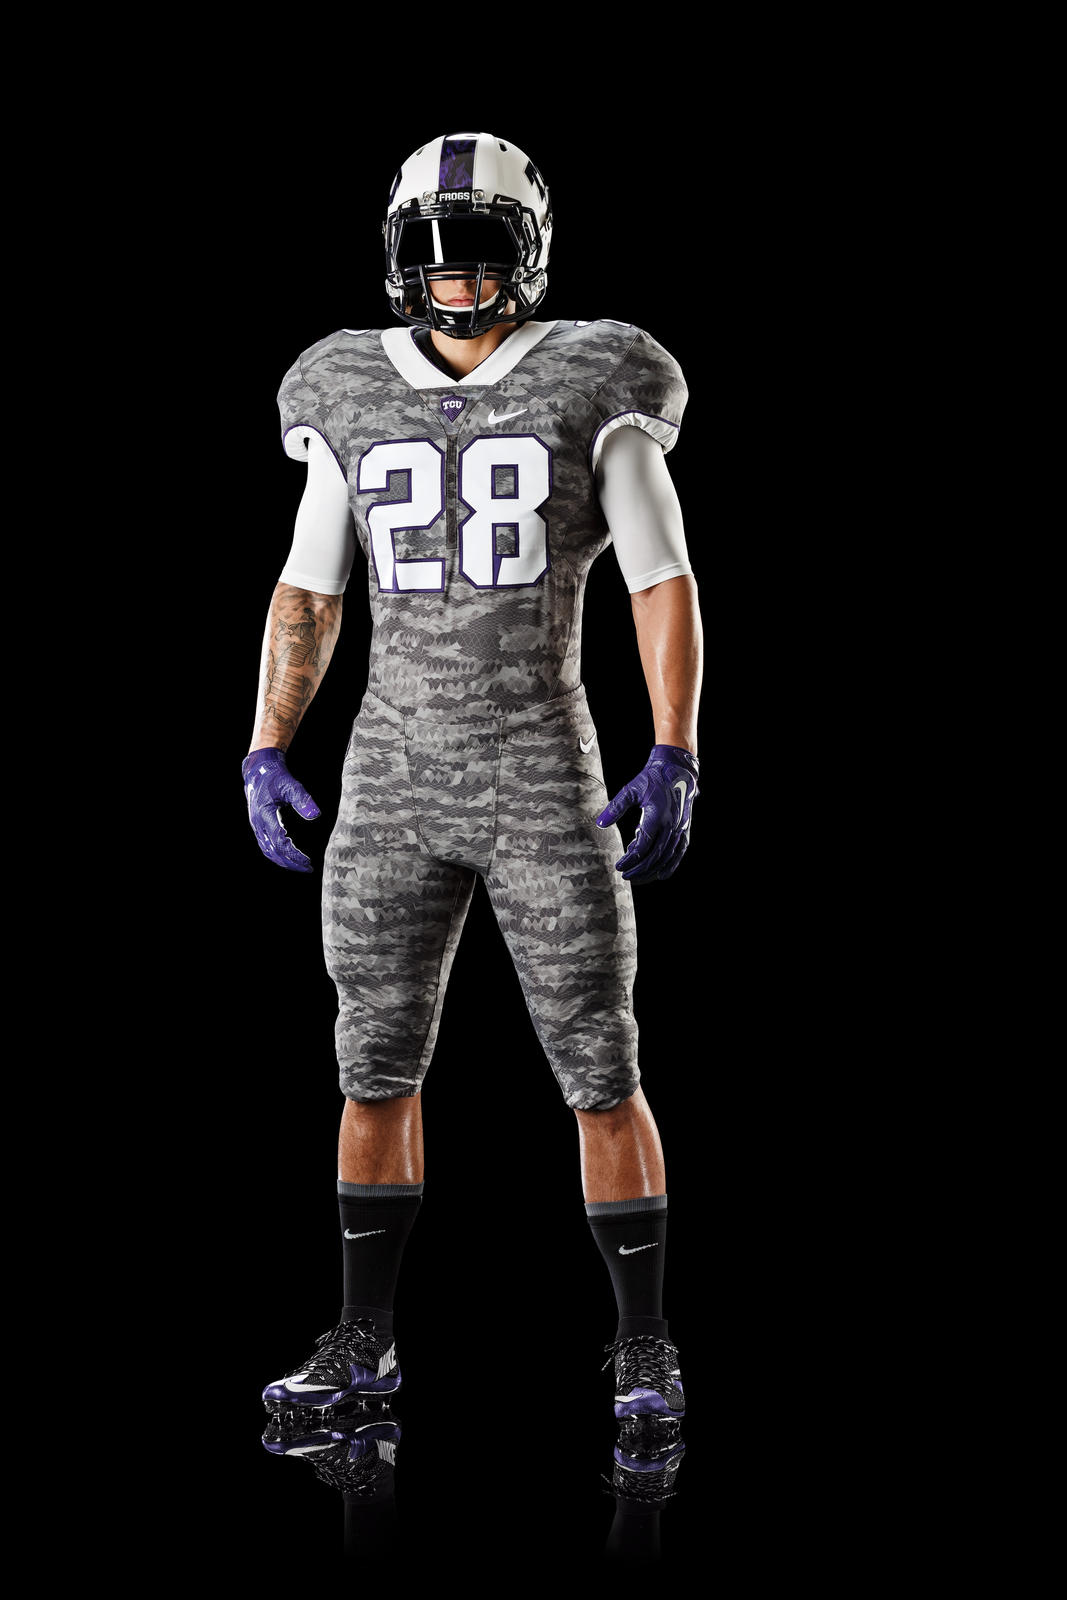 Tcu S Tradition Of Resilience Inspires Nike Football Mach